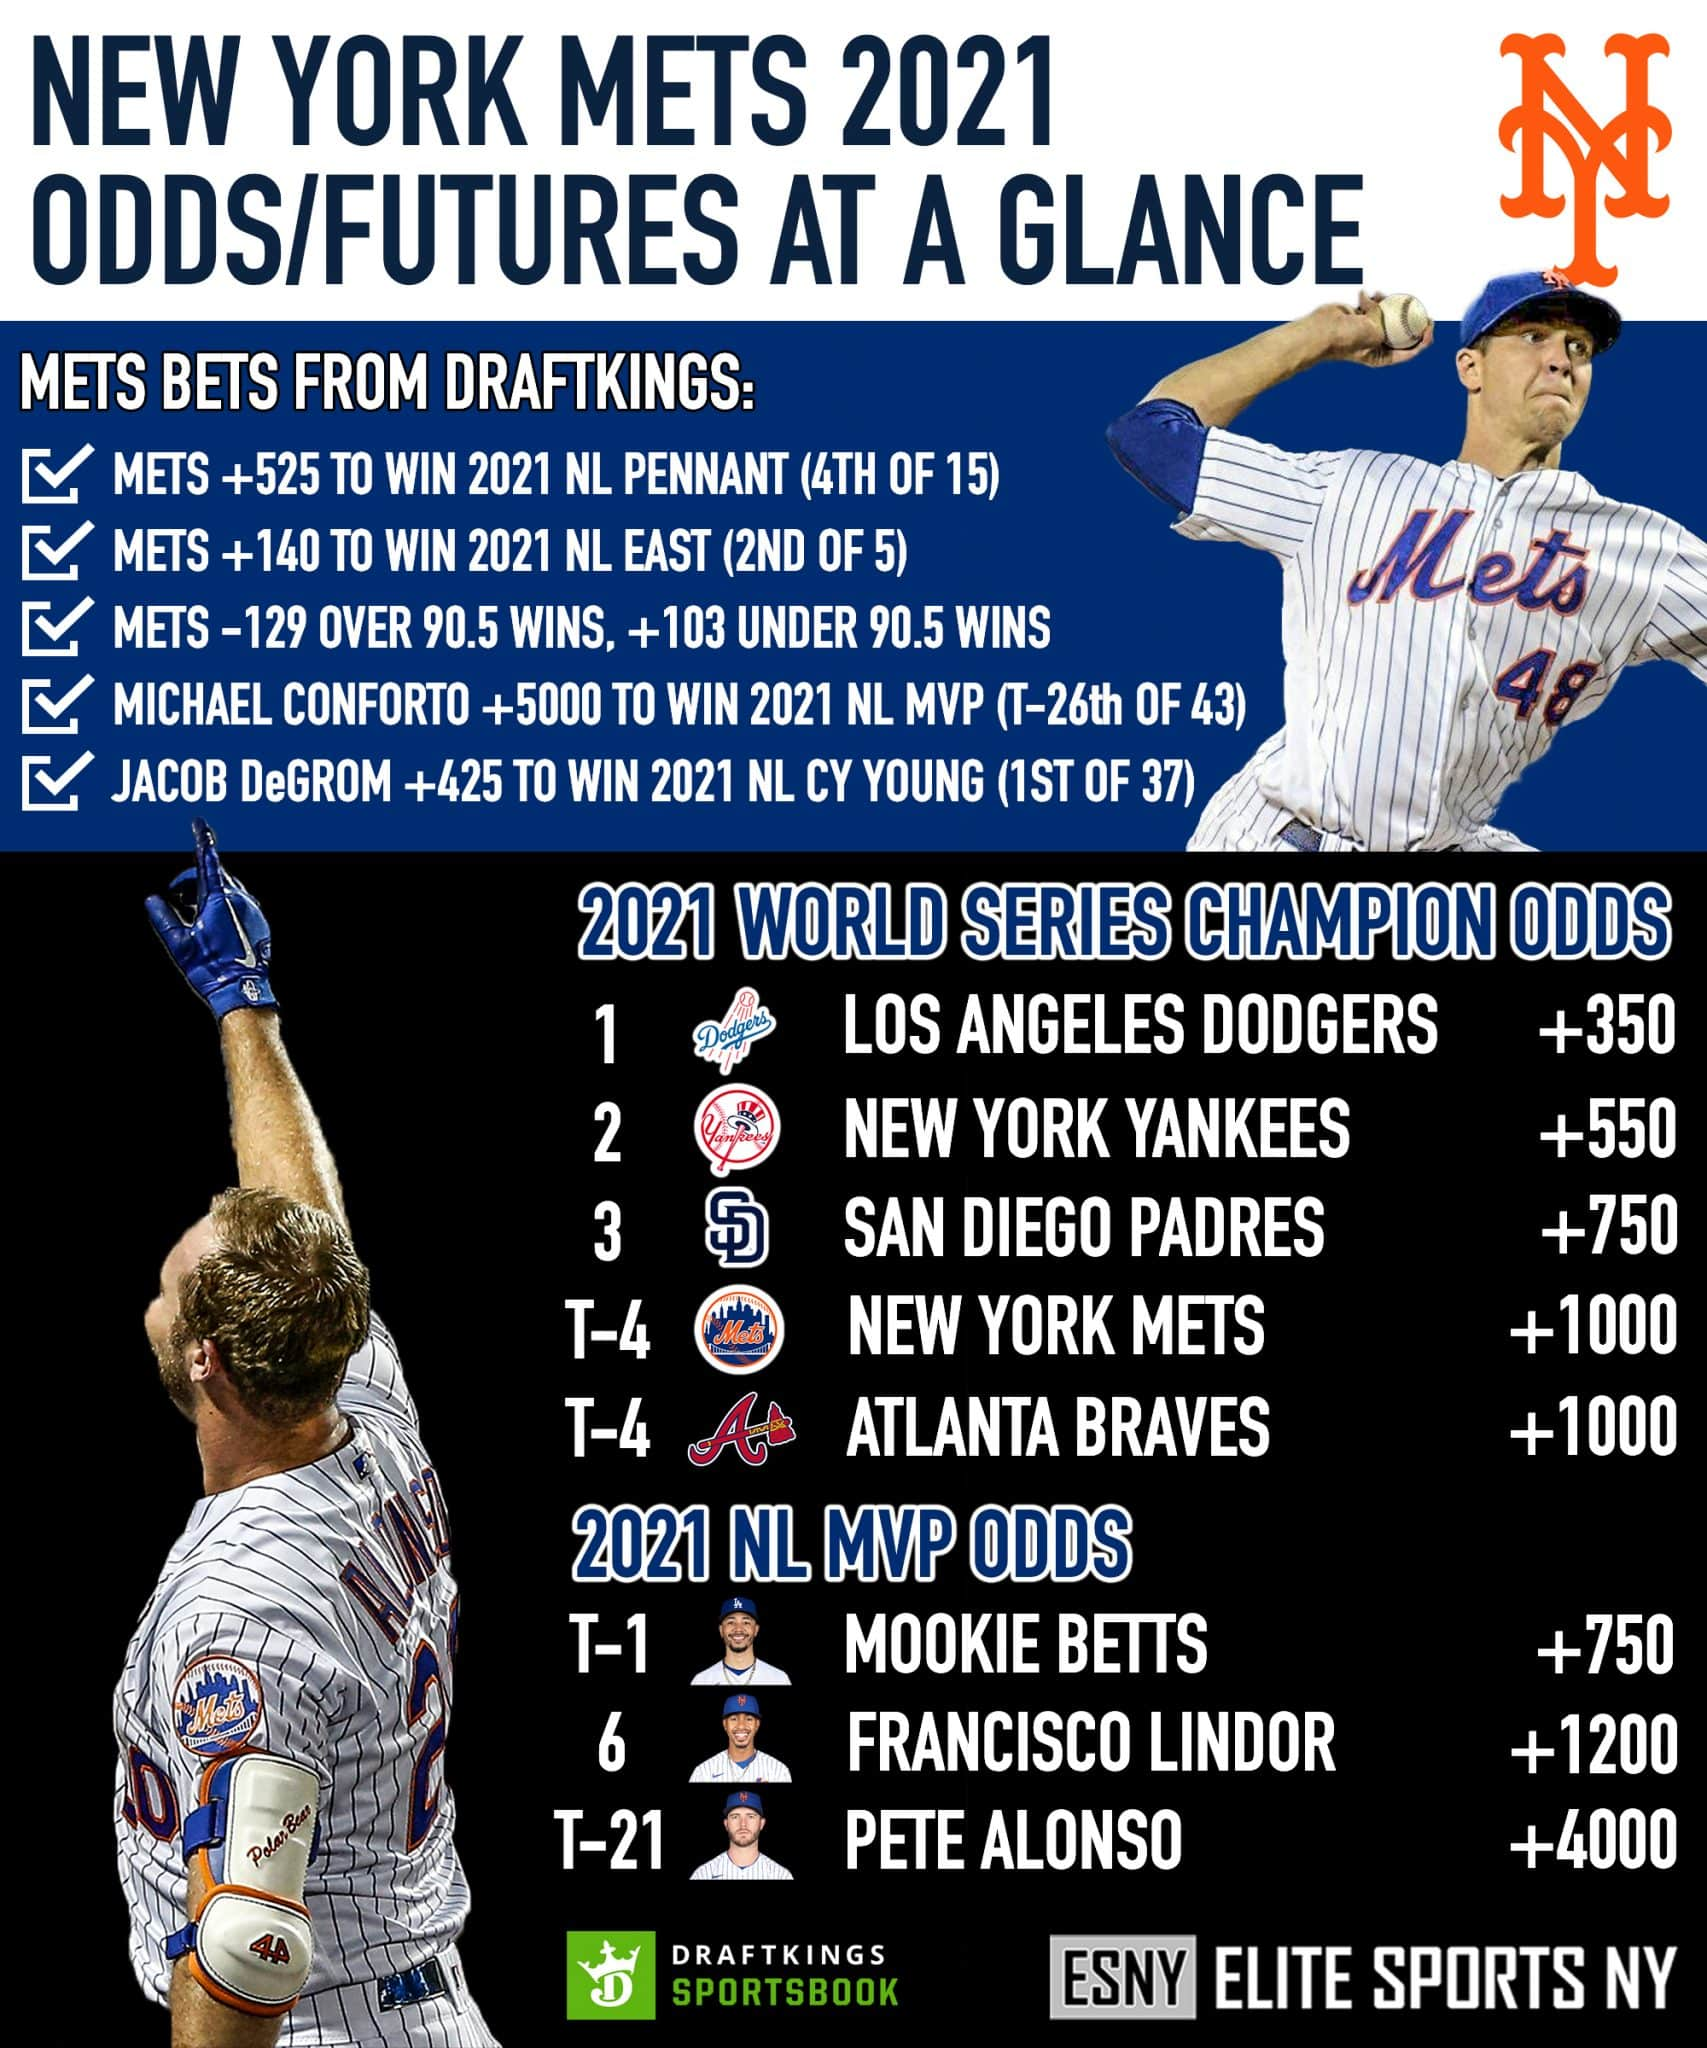 ESNY, New York Mets, 2021 Odds At A Glance